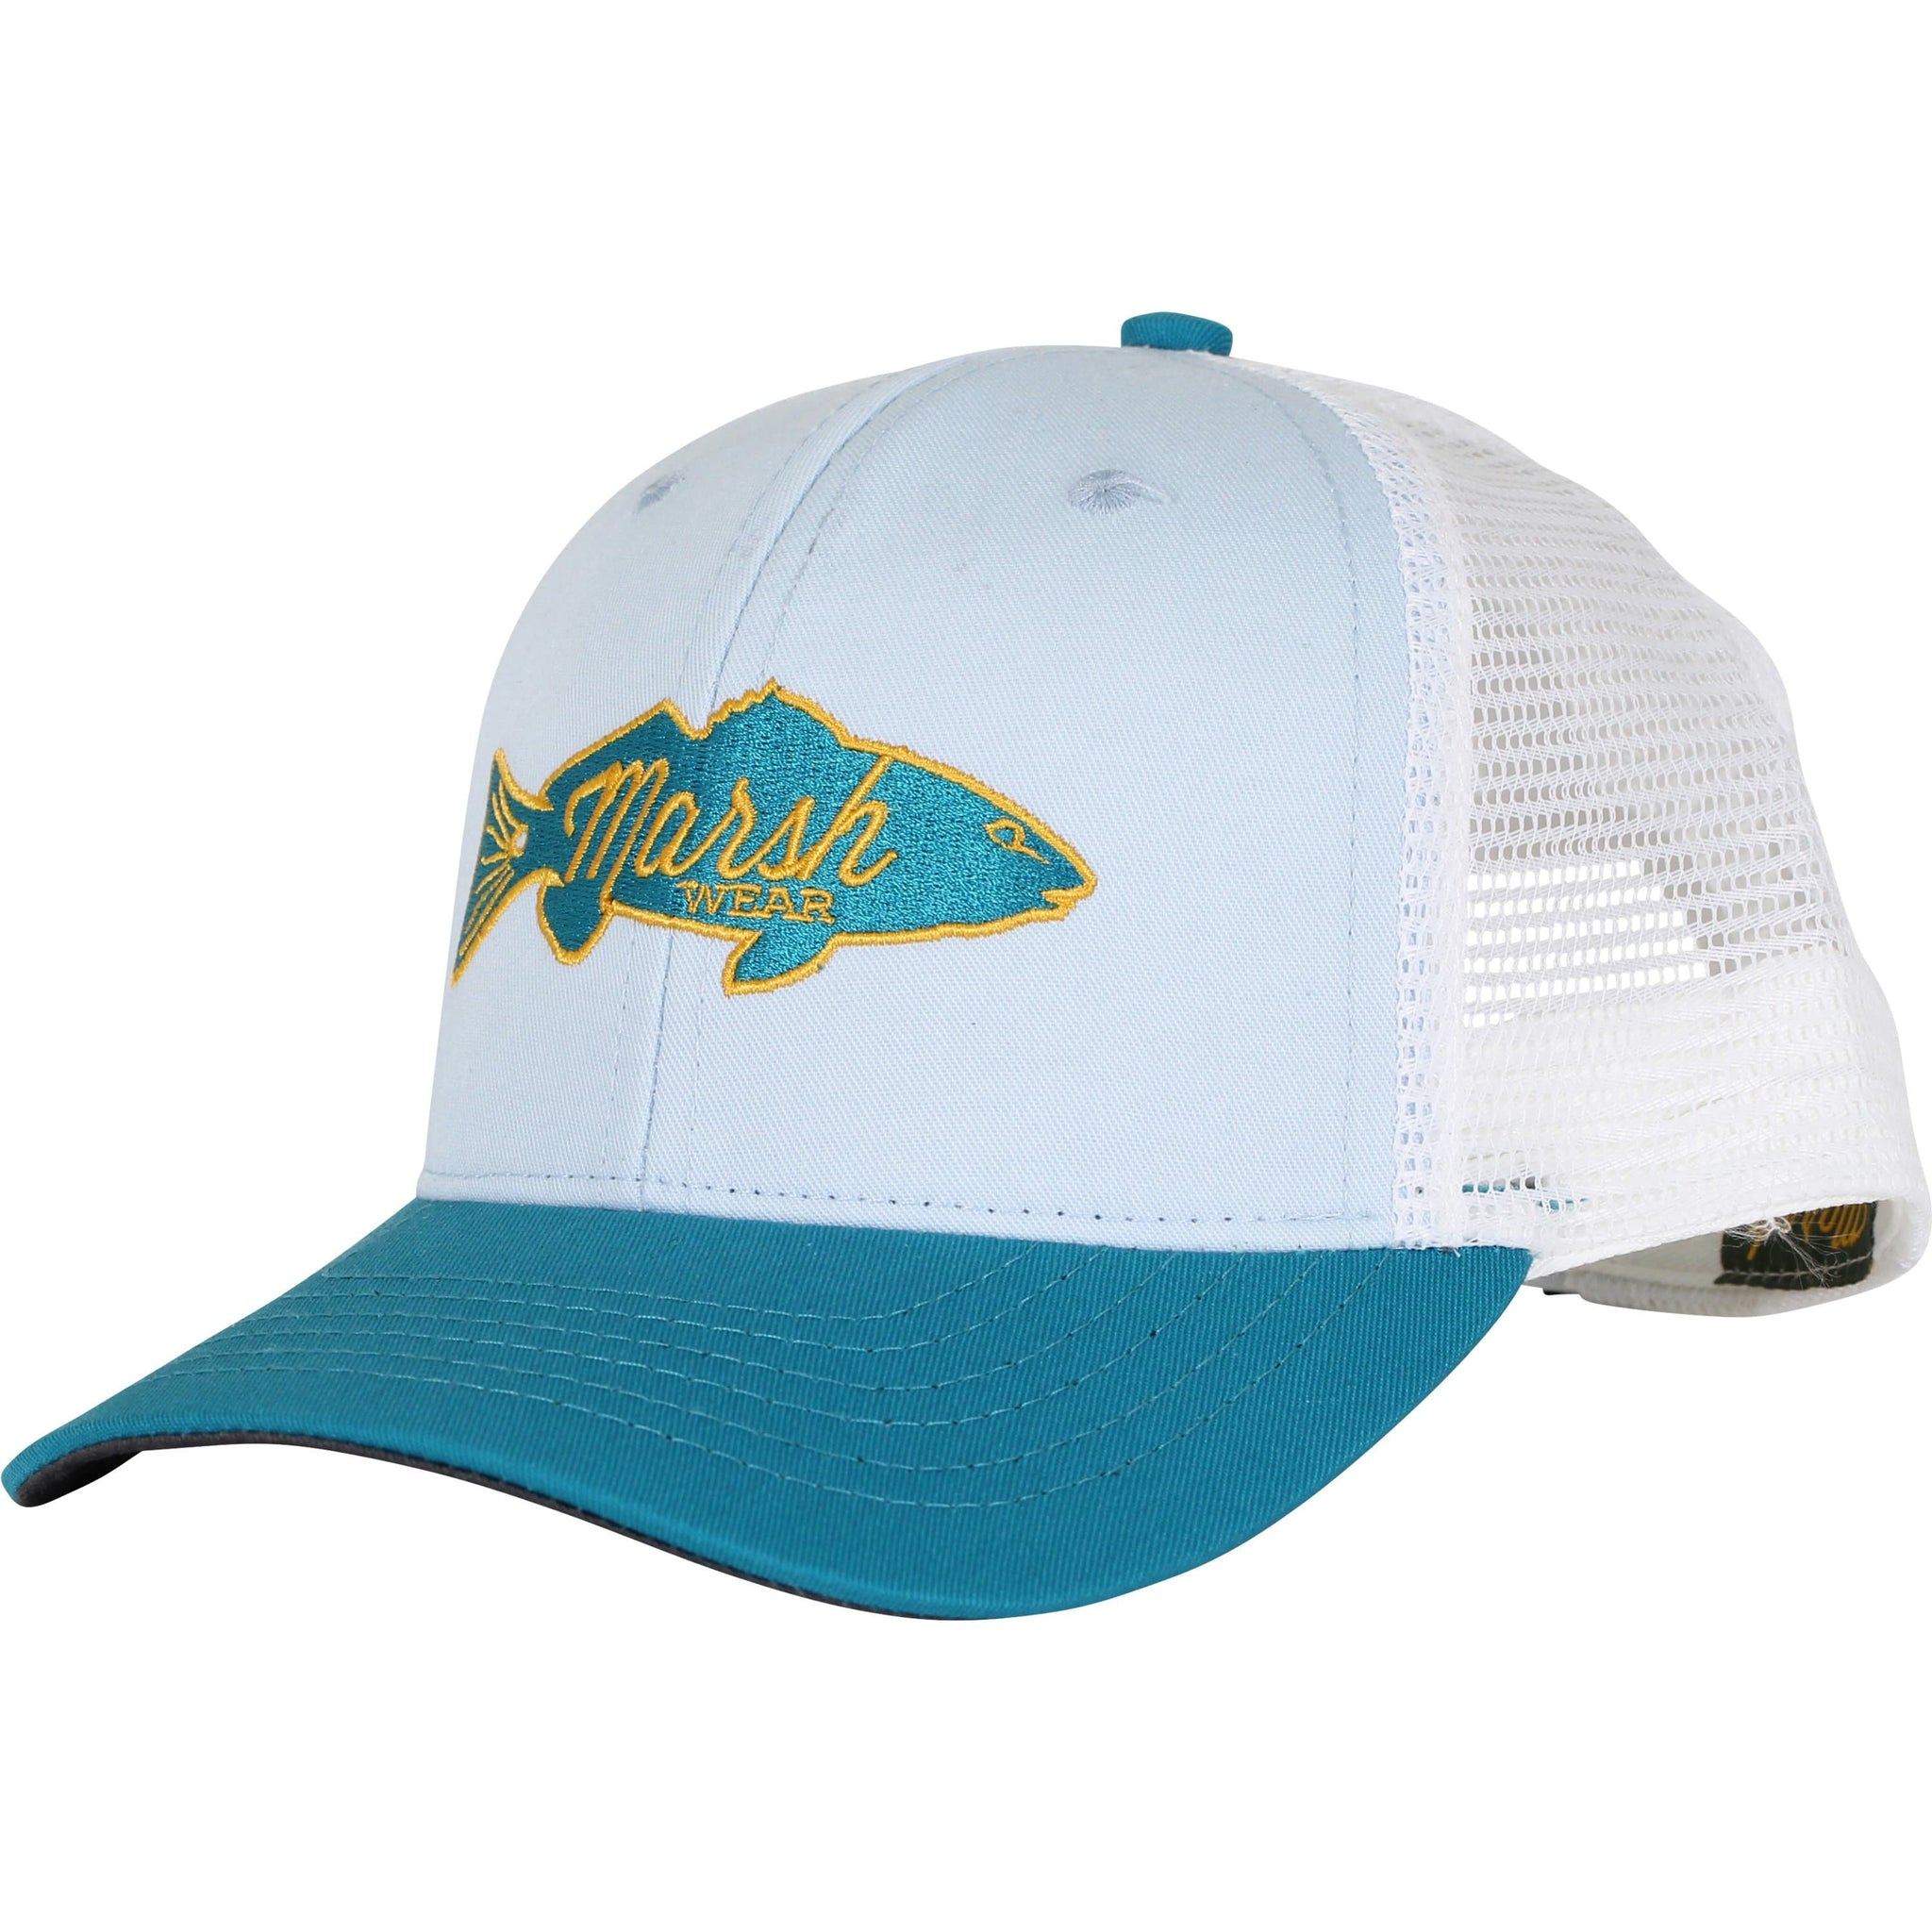 03c43be8f Home ALL Retro Redfish Trucker Hat. Silver Gray. Light Blue